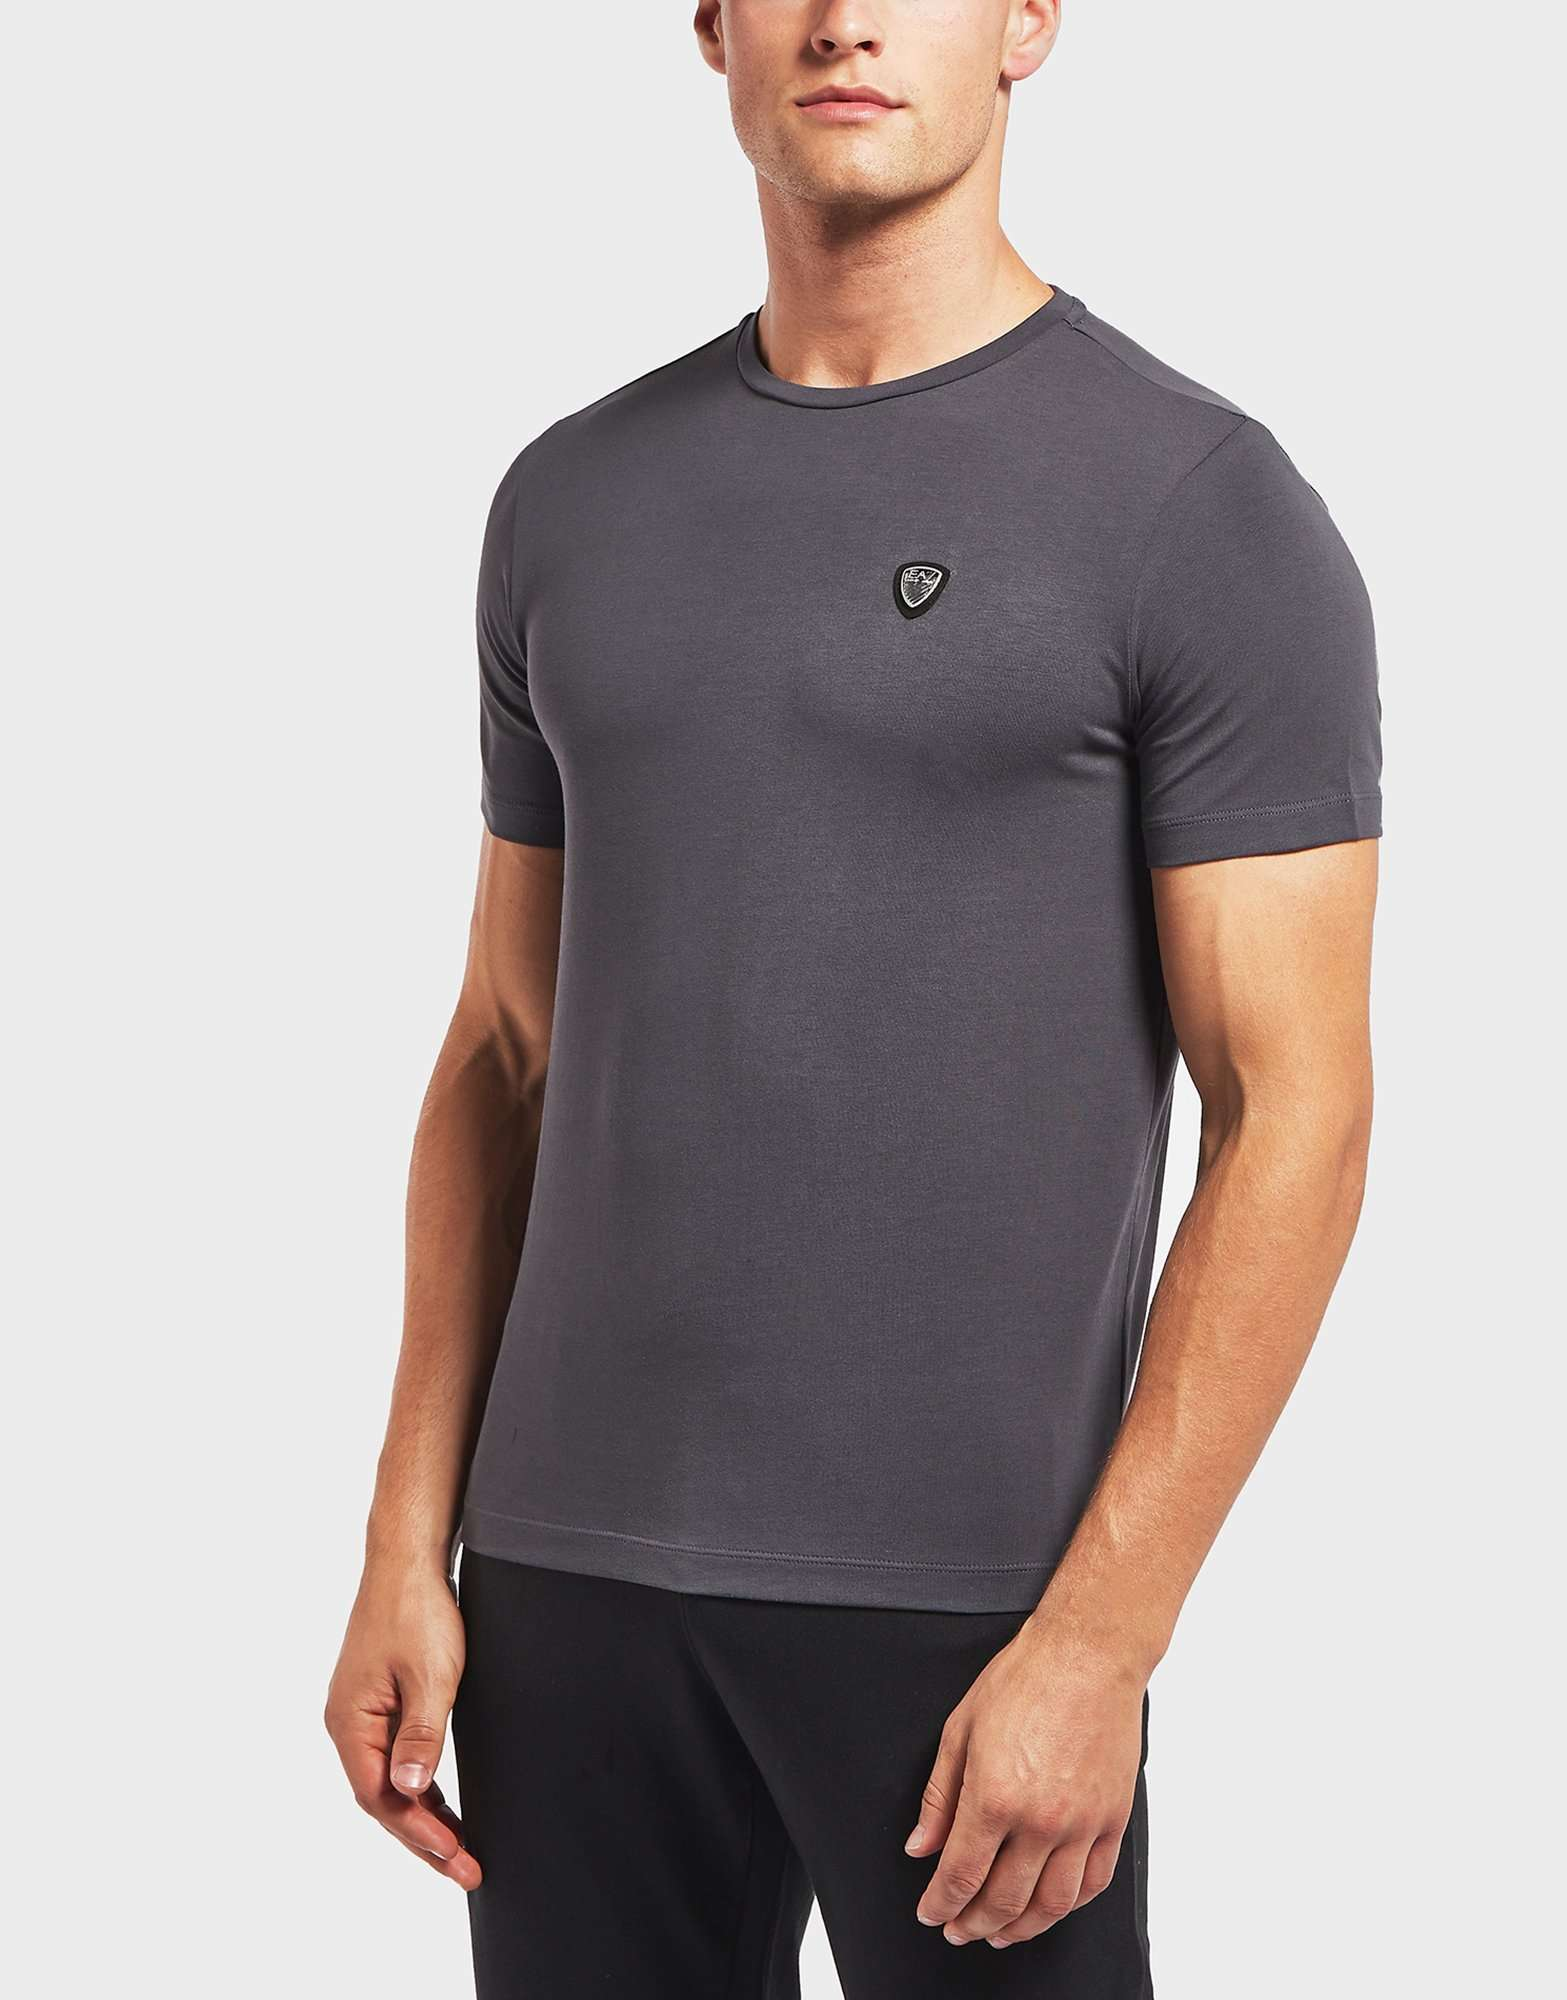 Emporio Armani EA7 Core Shield Logo Short Sleeve T-Shirt